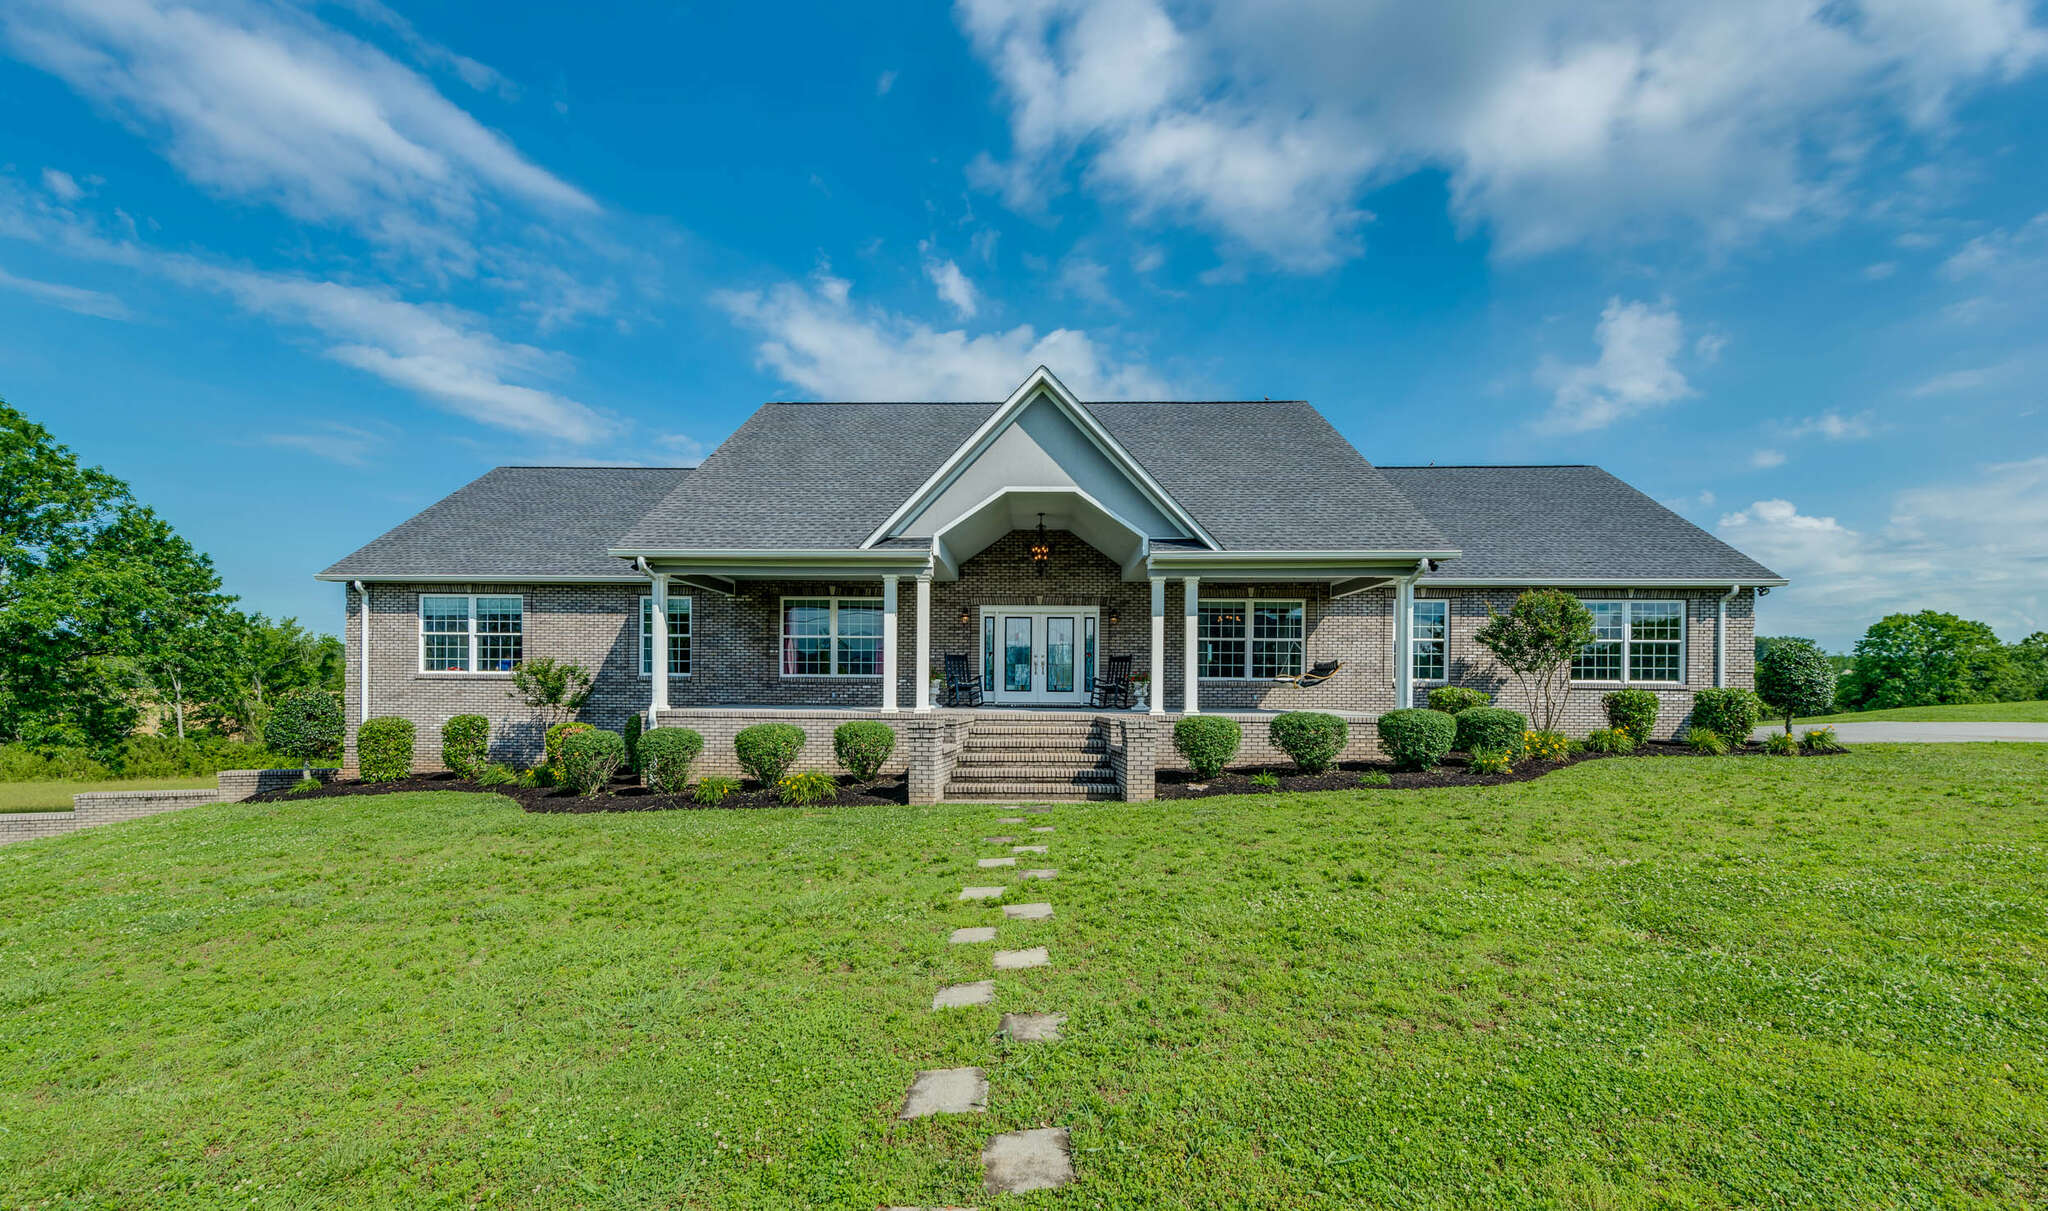 Single Family for Sale at 128 Brook Lane Cookeville, Tennessee 38506 United States